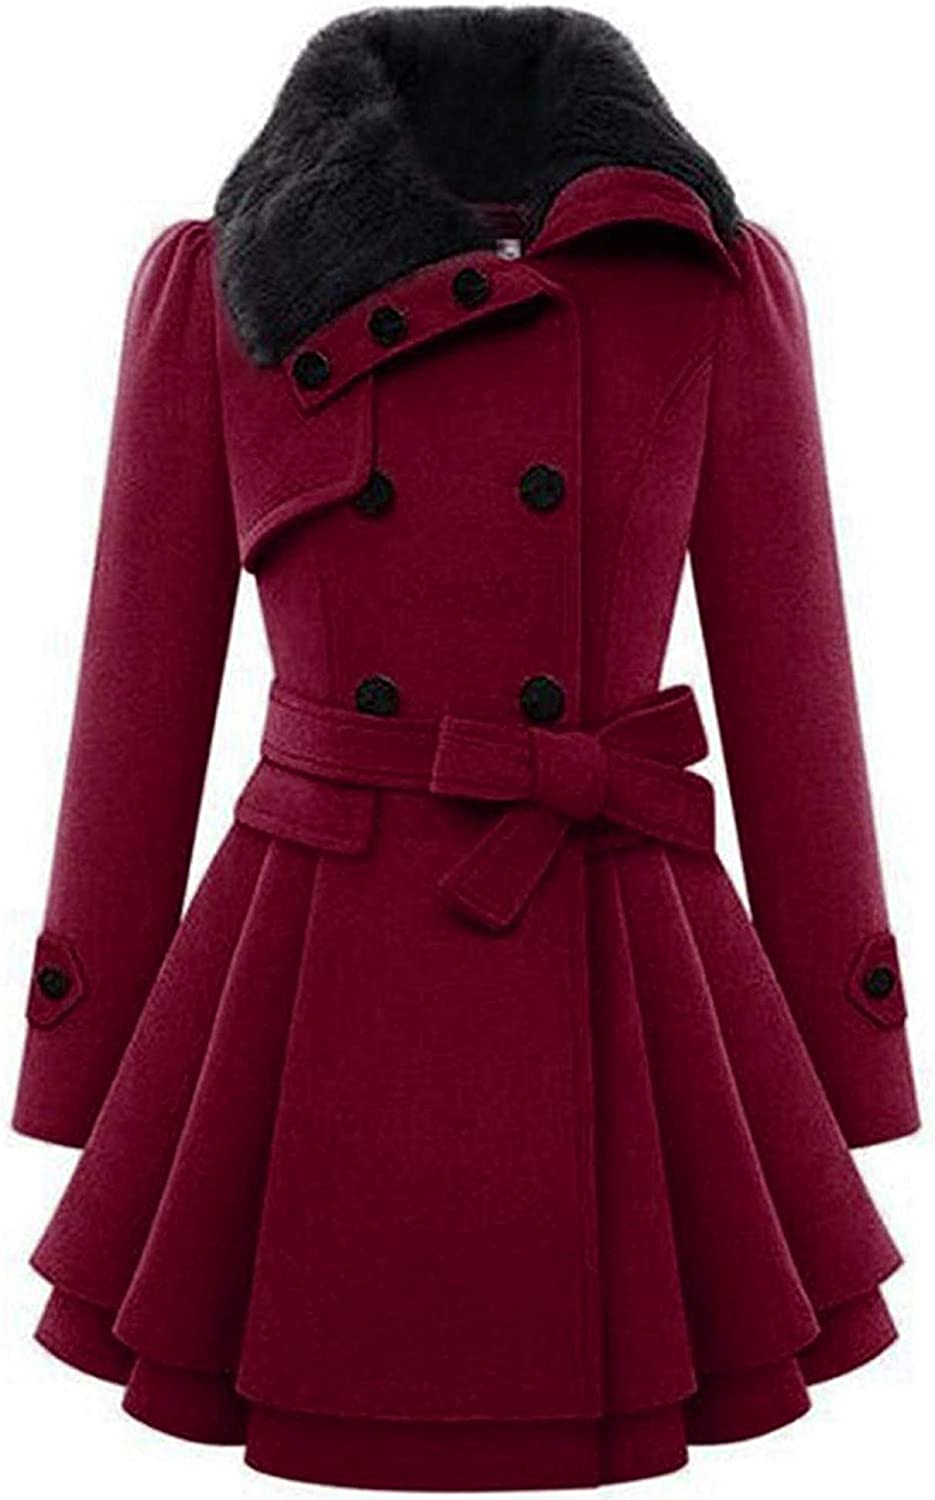 Chigant Womens Winter Pea Coat Double Breasted Coat Faux Fur Jacket Parka